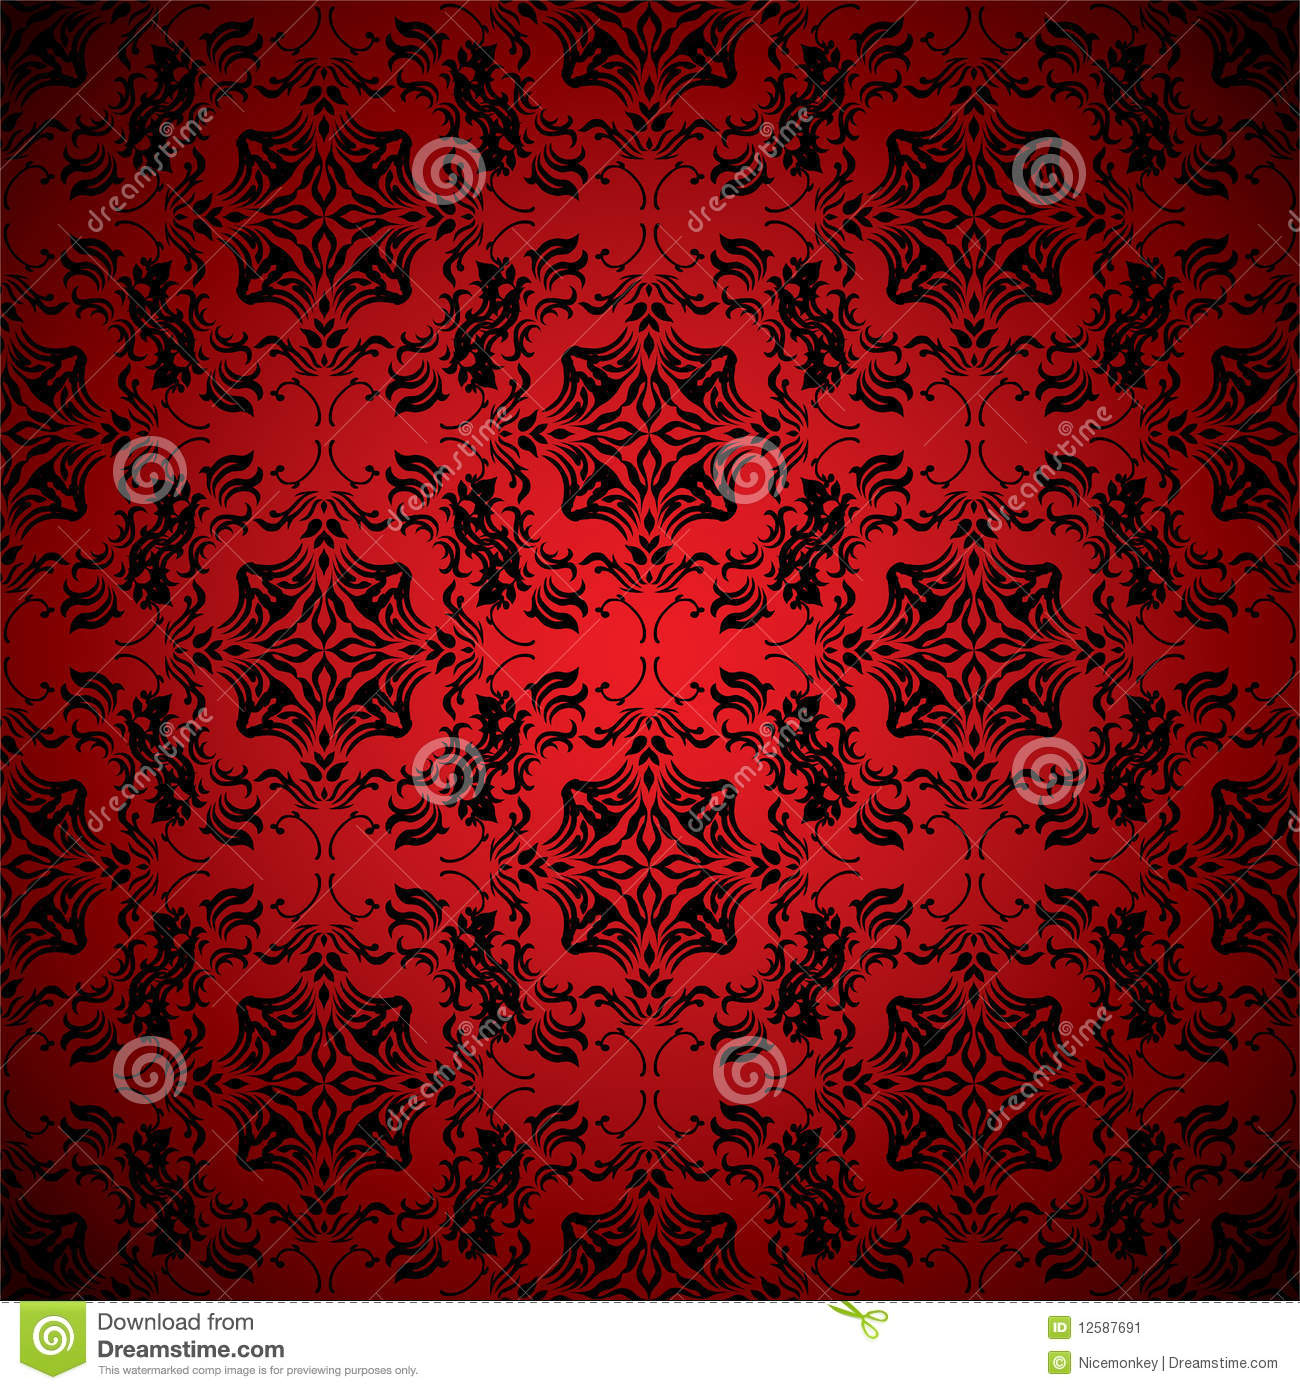 papier peint de rouge de sang illustration de vecteur image 12587691. Black Bedroom Furniture Sets. Home Design Ideas